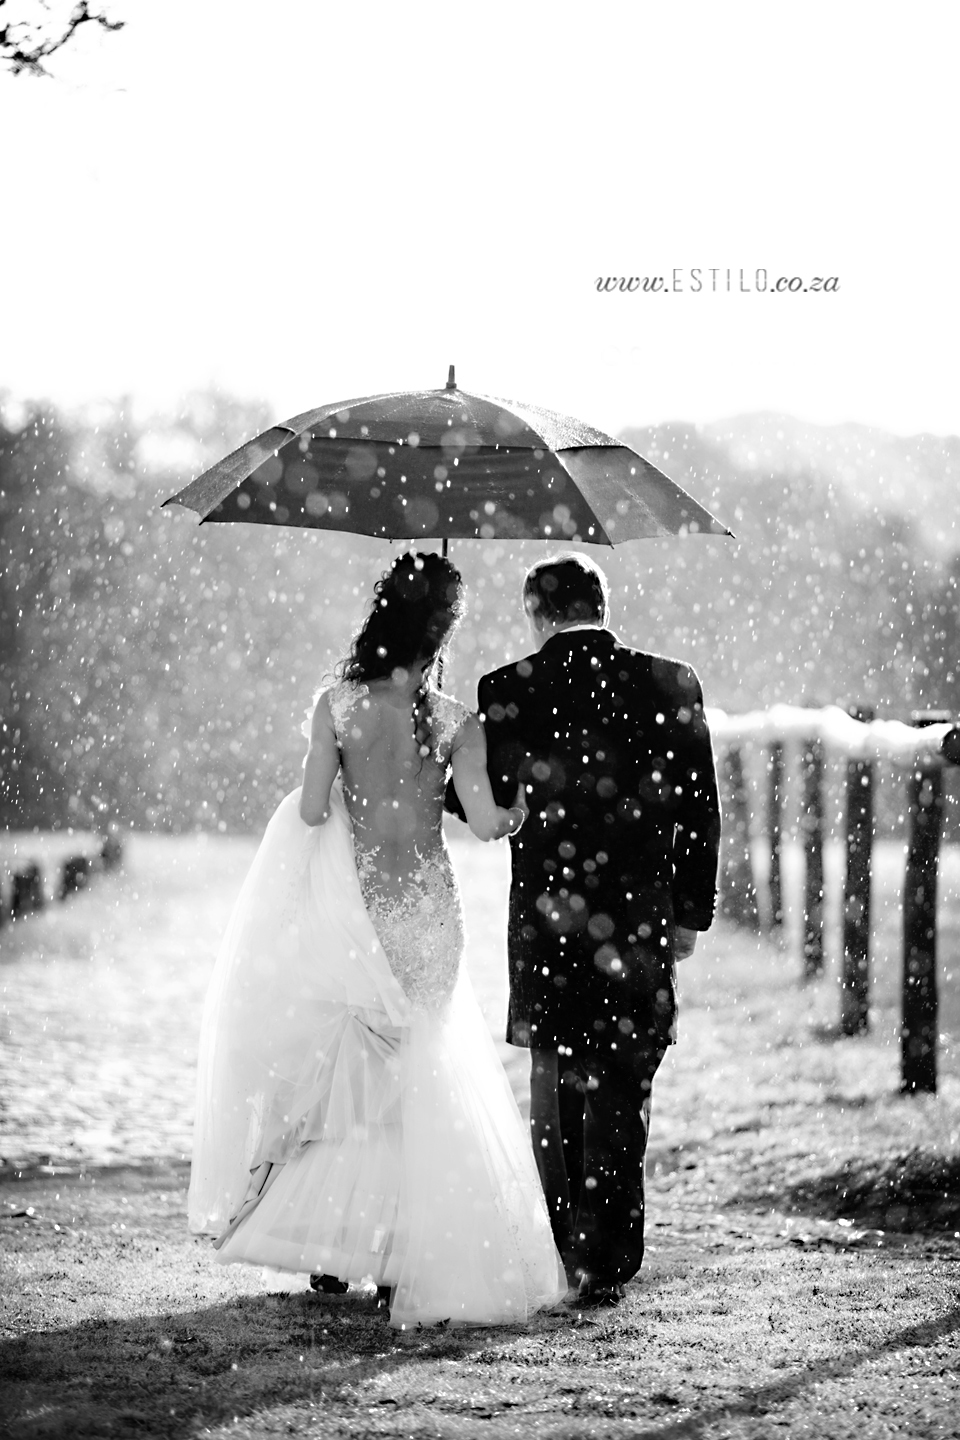 steve-hofmeyr-wedding-janine-hofmeyr-greenleaves-wedding-estilo-wedding-photographers-best-wedding-photographers-southafrica__ (35).jpg